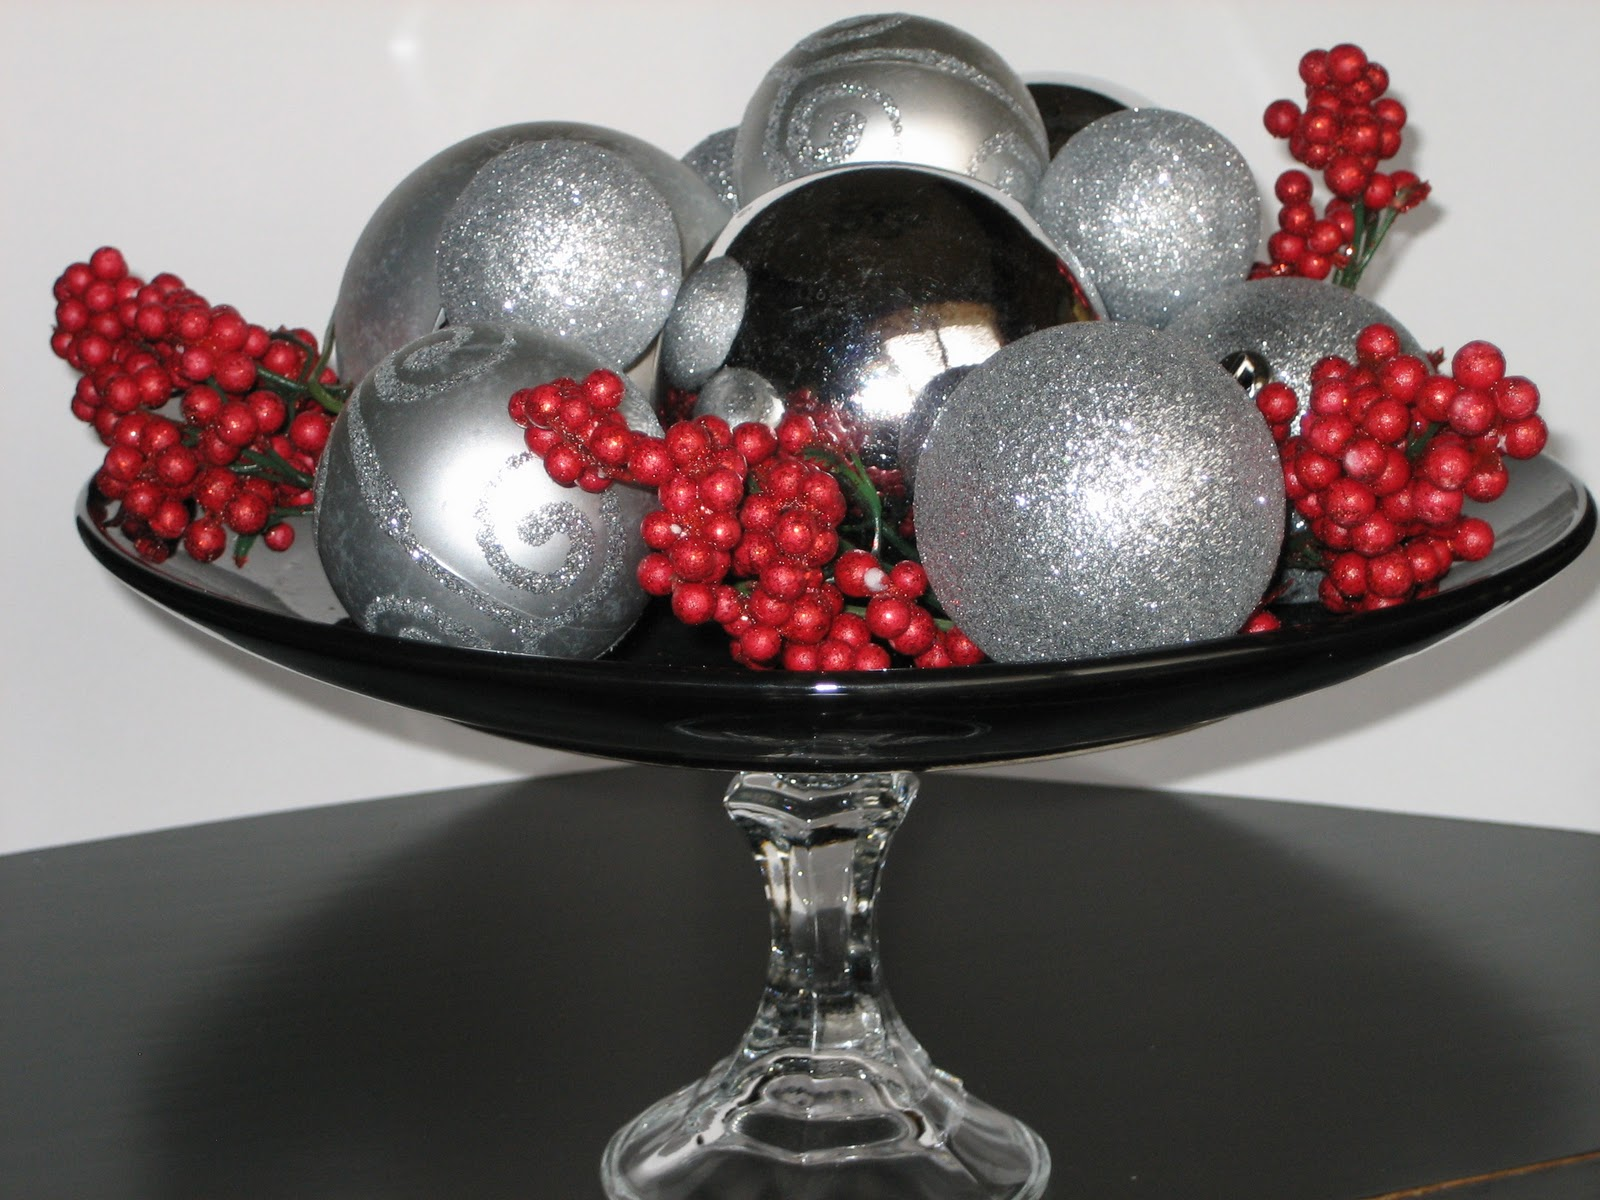 Peppermint Plum 5 Minute 5 Dollar Christmas Centerpiece